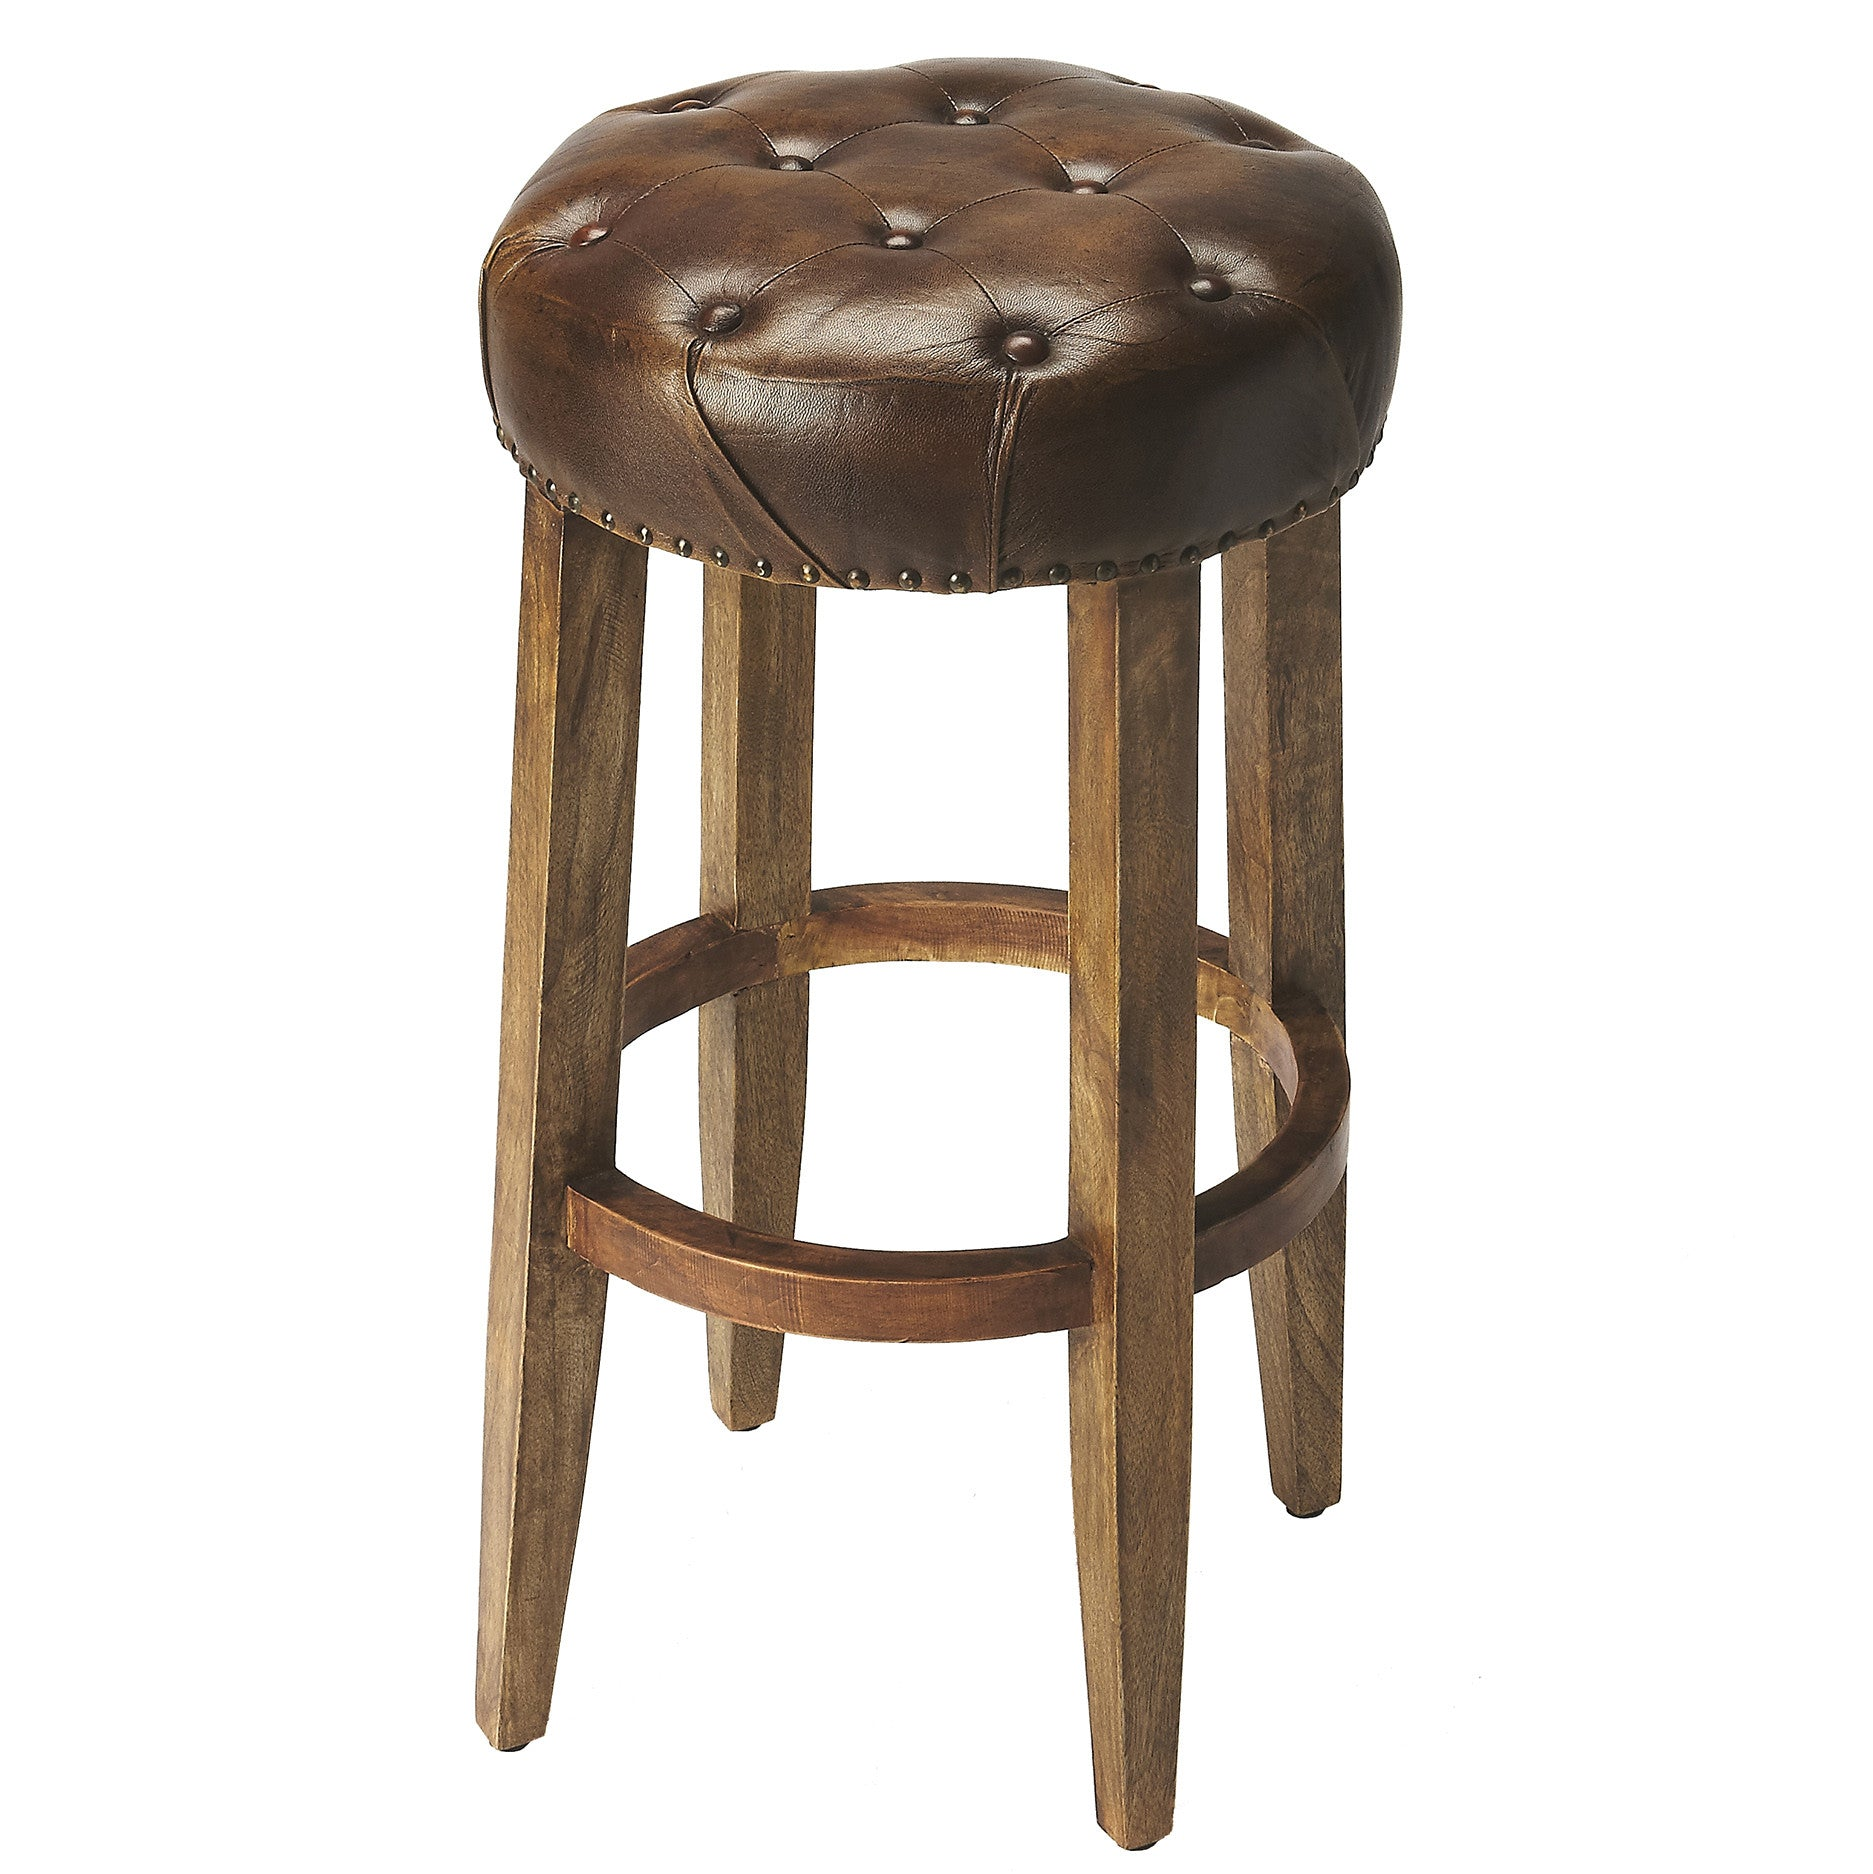 Wood and Leather Industrial Modern Bar Stool